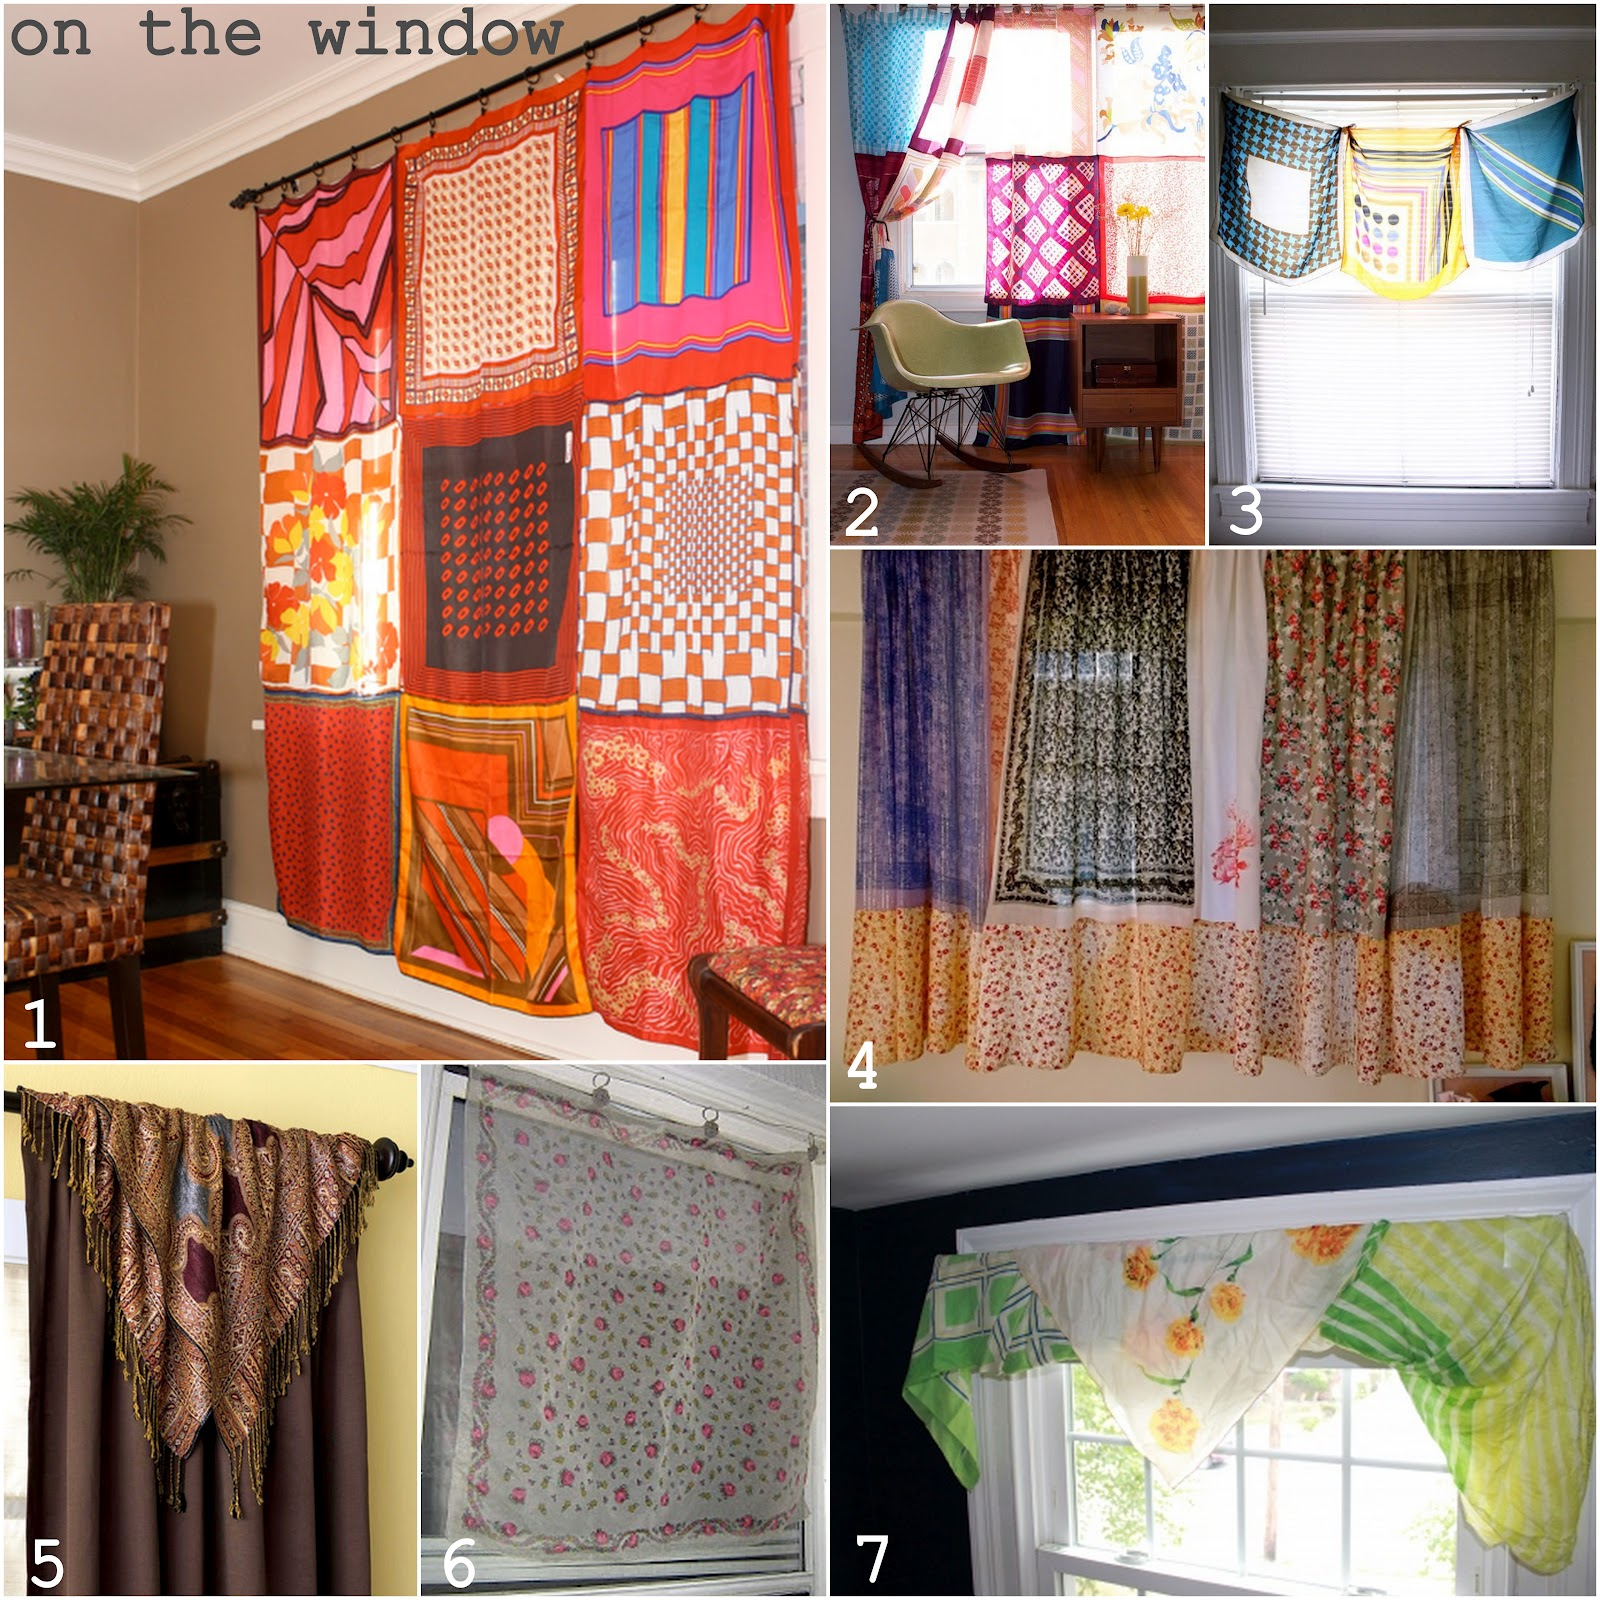 Inspiration and realisation diy fashion blog scarf home for Top diy home decor blogs